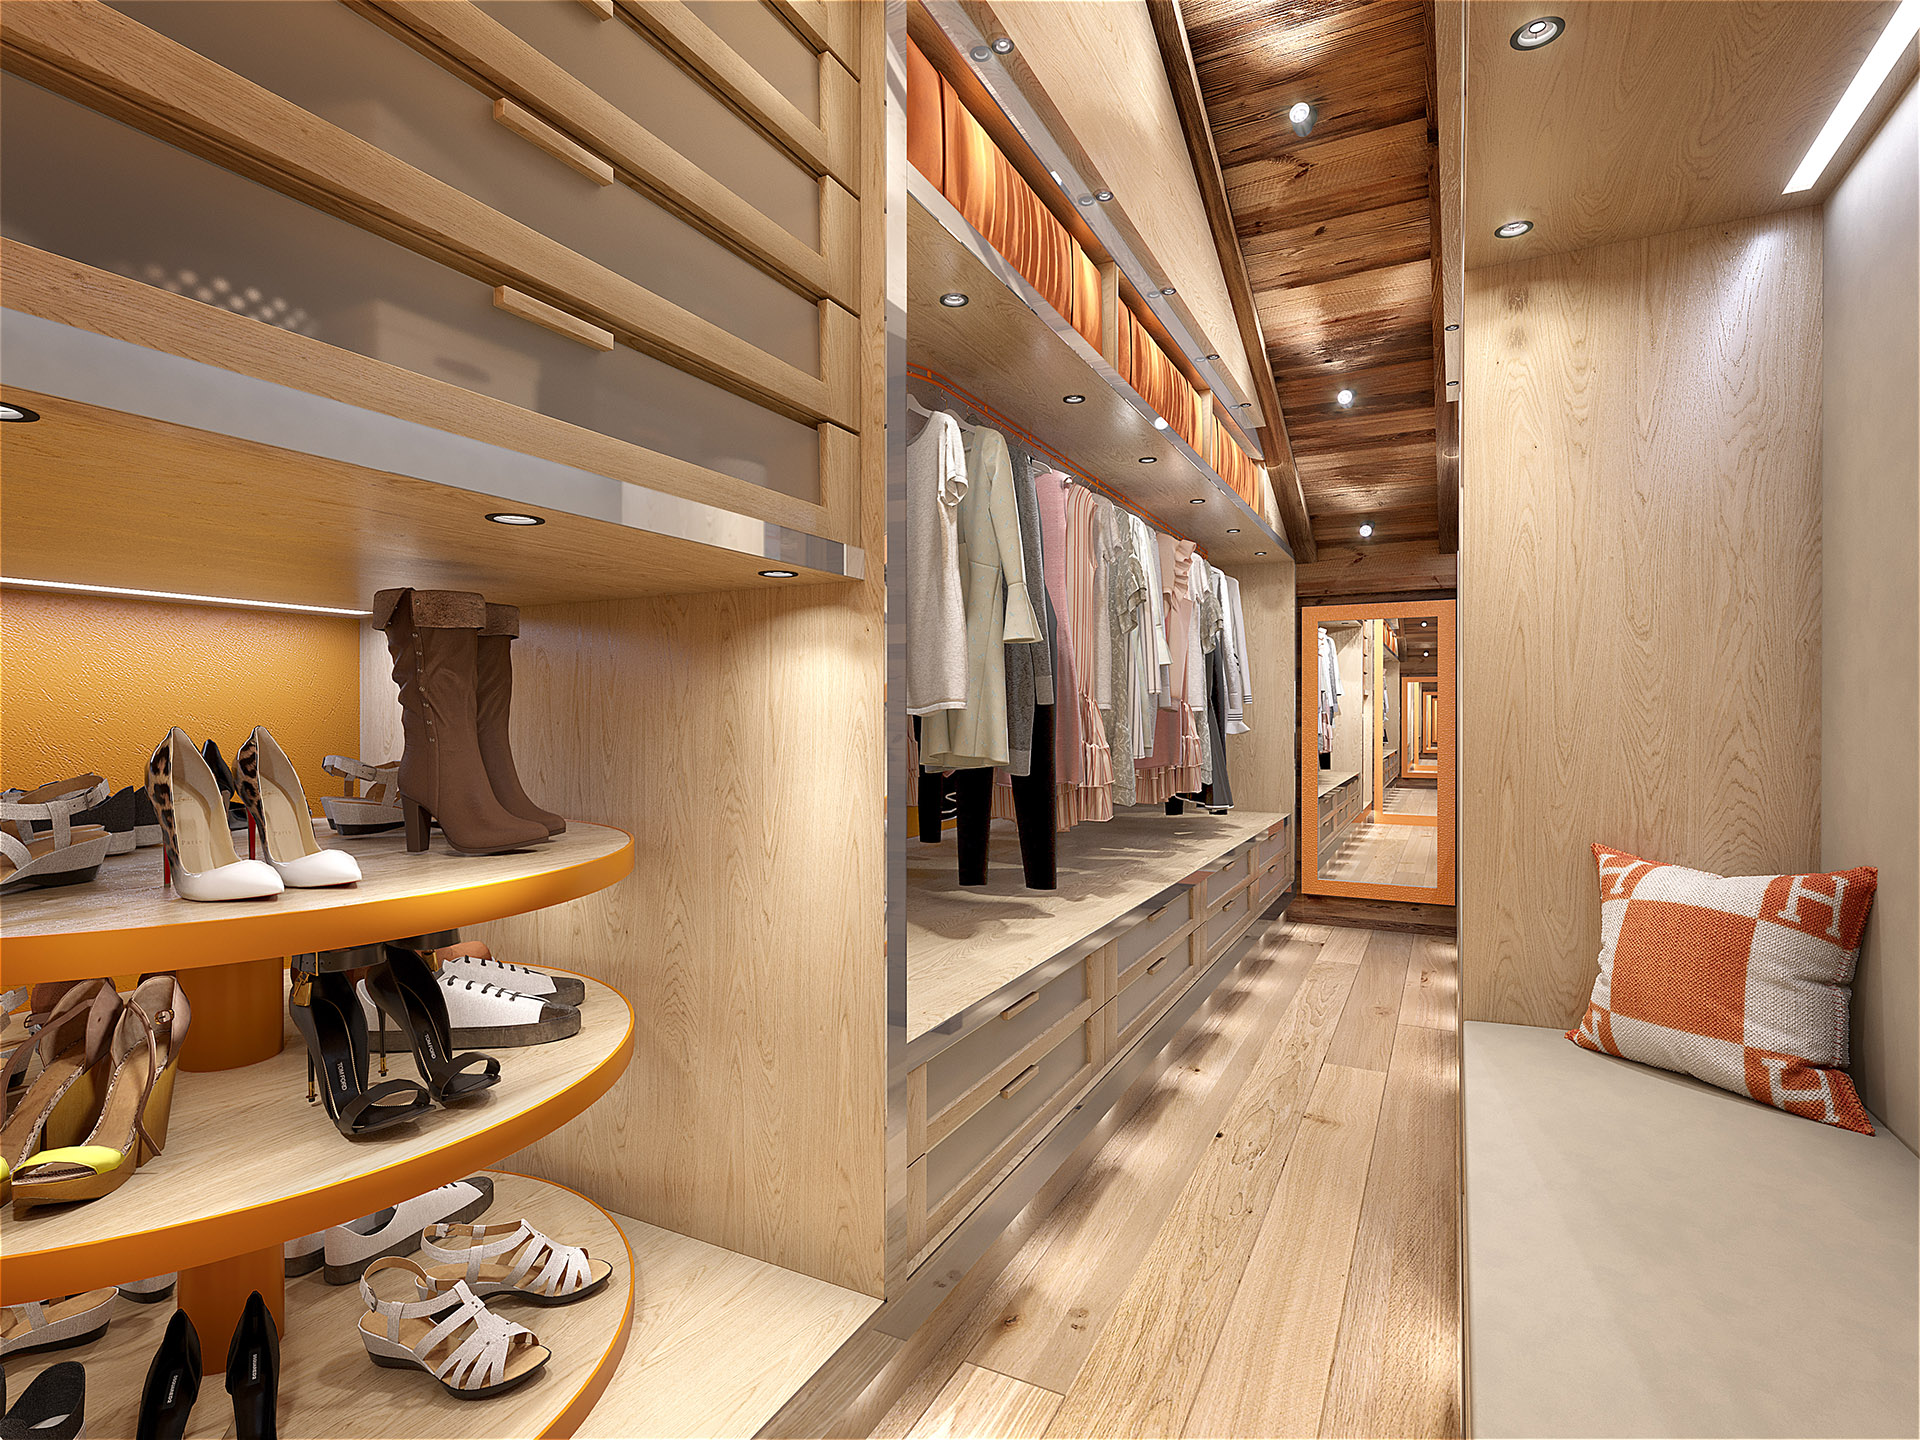 3D visualization of a luxury dressing room in a chalet